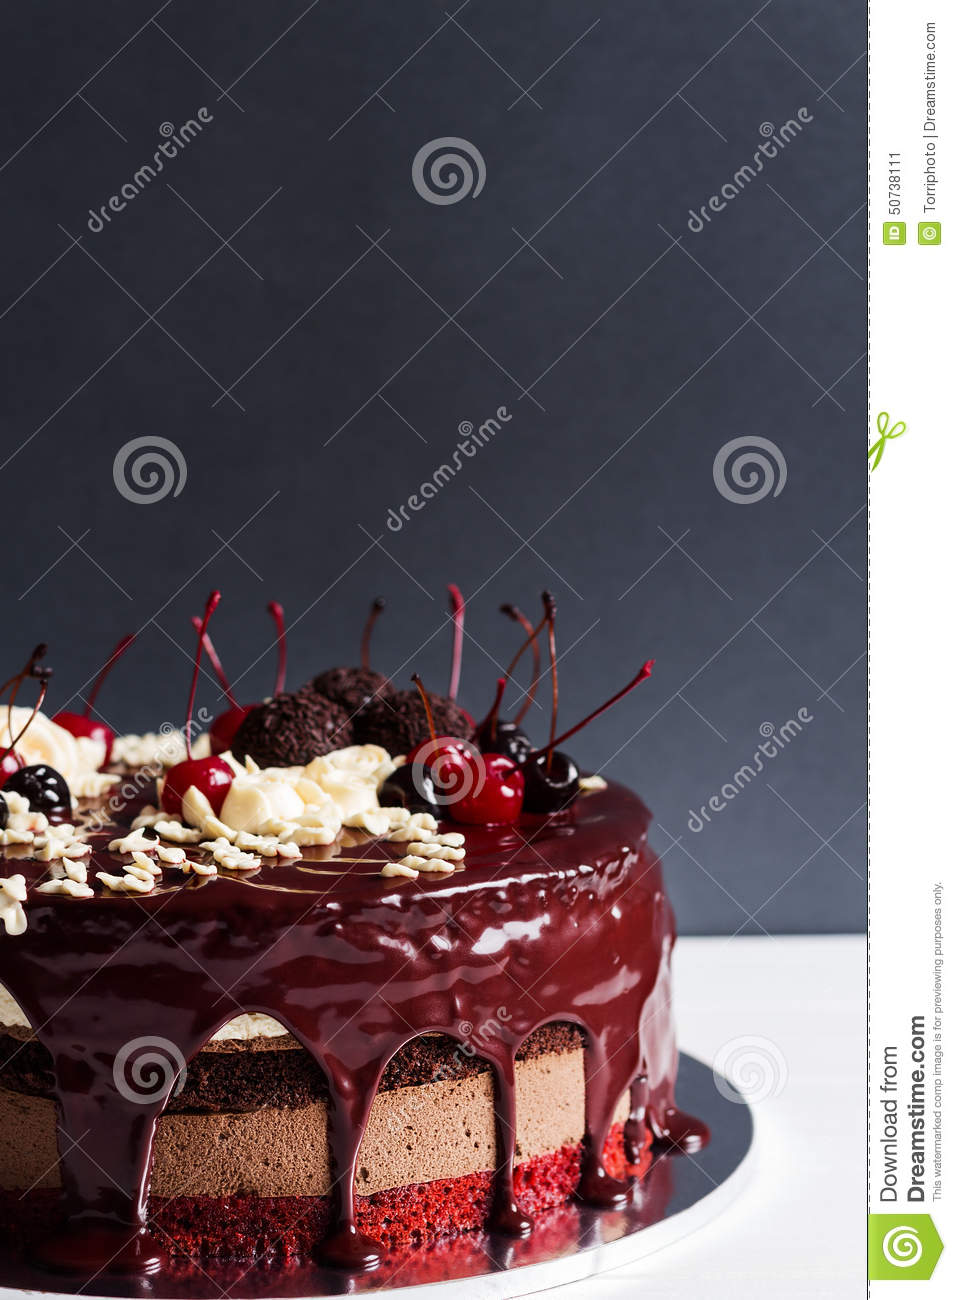 Layer Cake Decorated With Chocolate Glaze, Cream Flowers And Che Stock ...